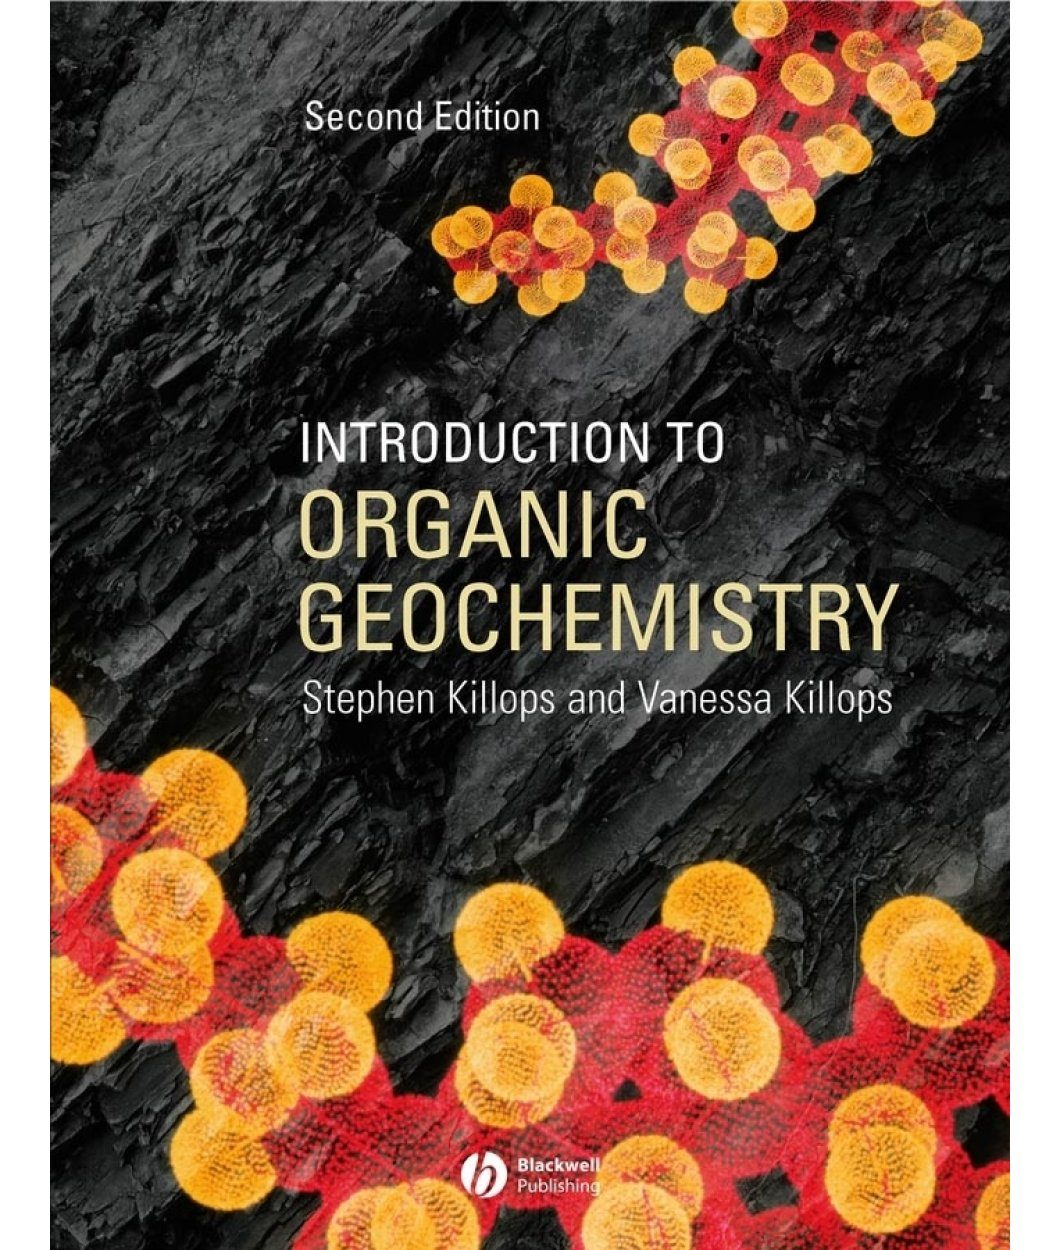 An Introduction to Organic Geochemistry